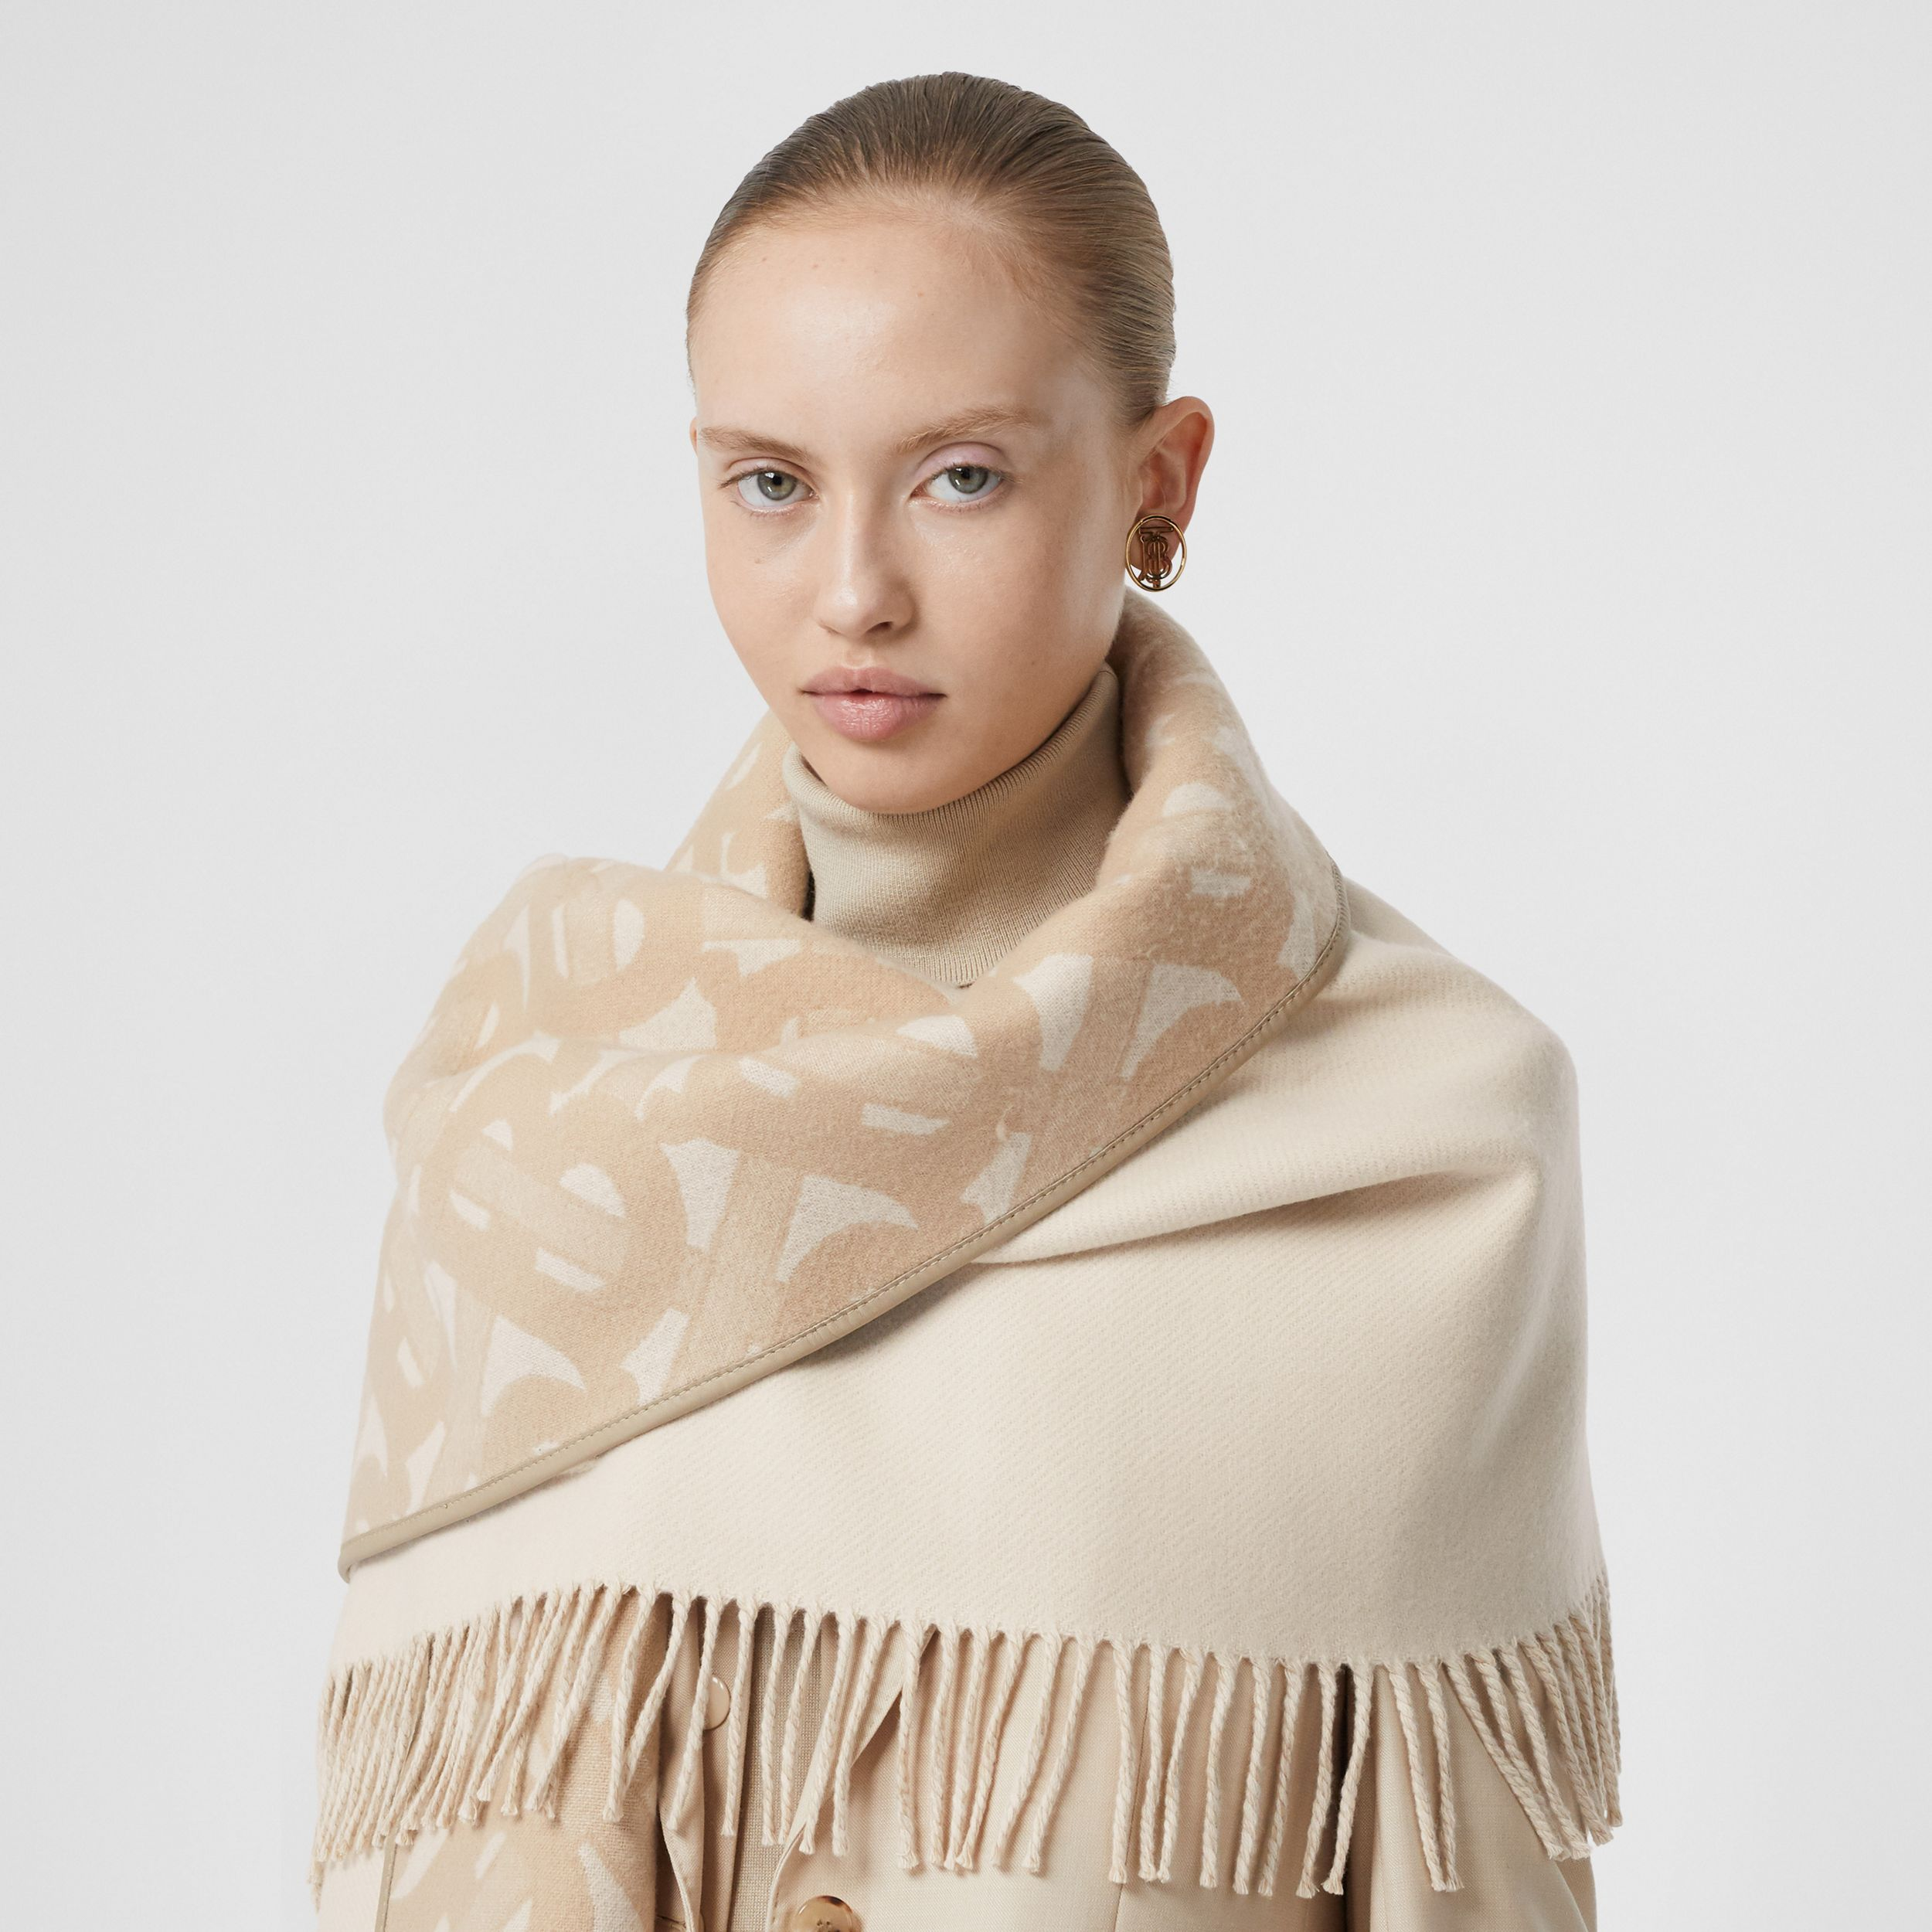 Monogram Merino Wool Cashmere Jacquard Cape in Soft Fawn - Women | Burberry - 2